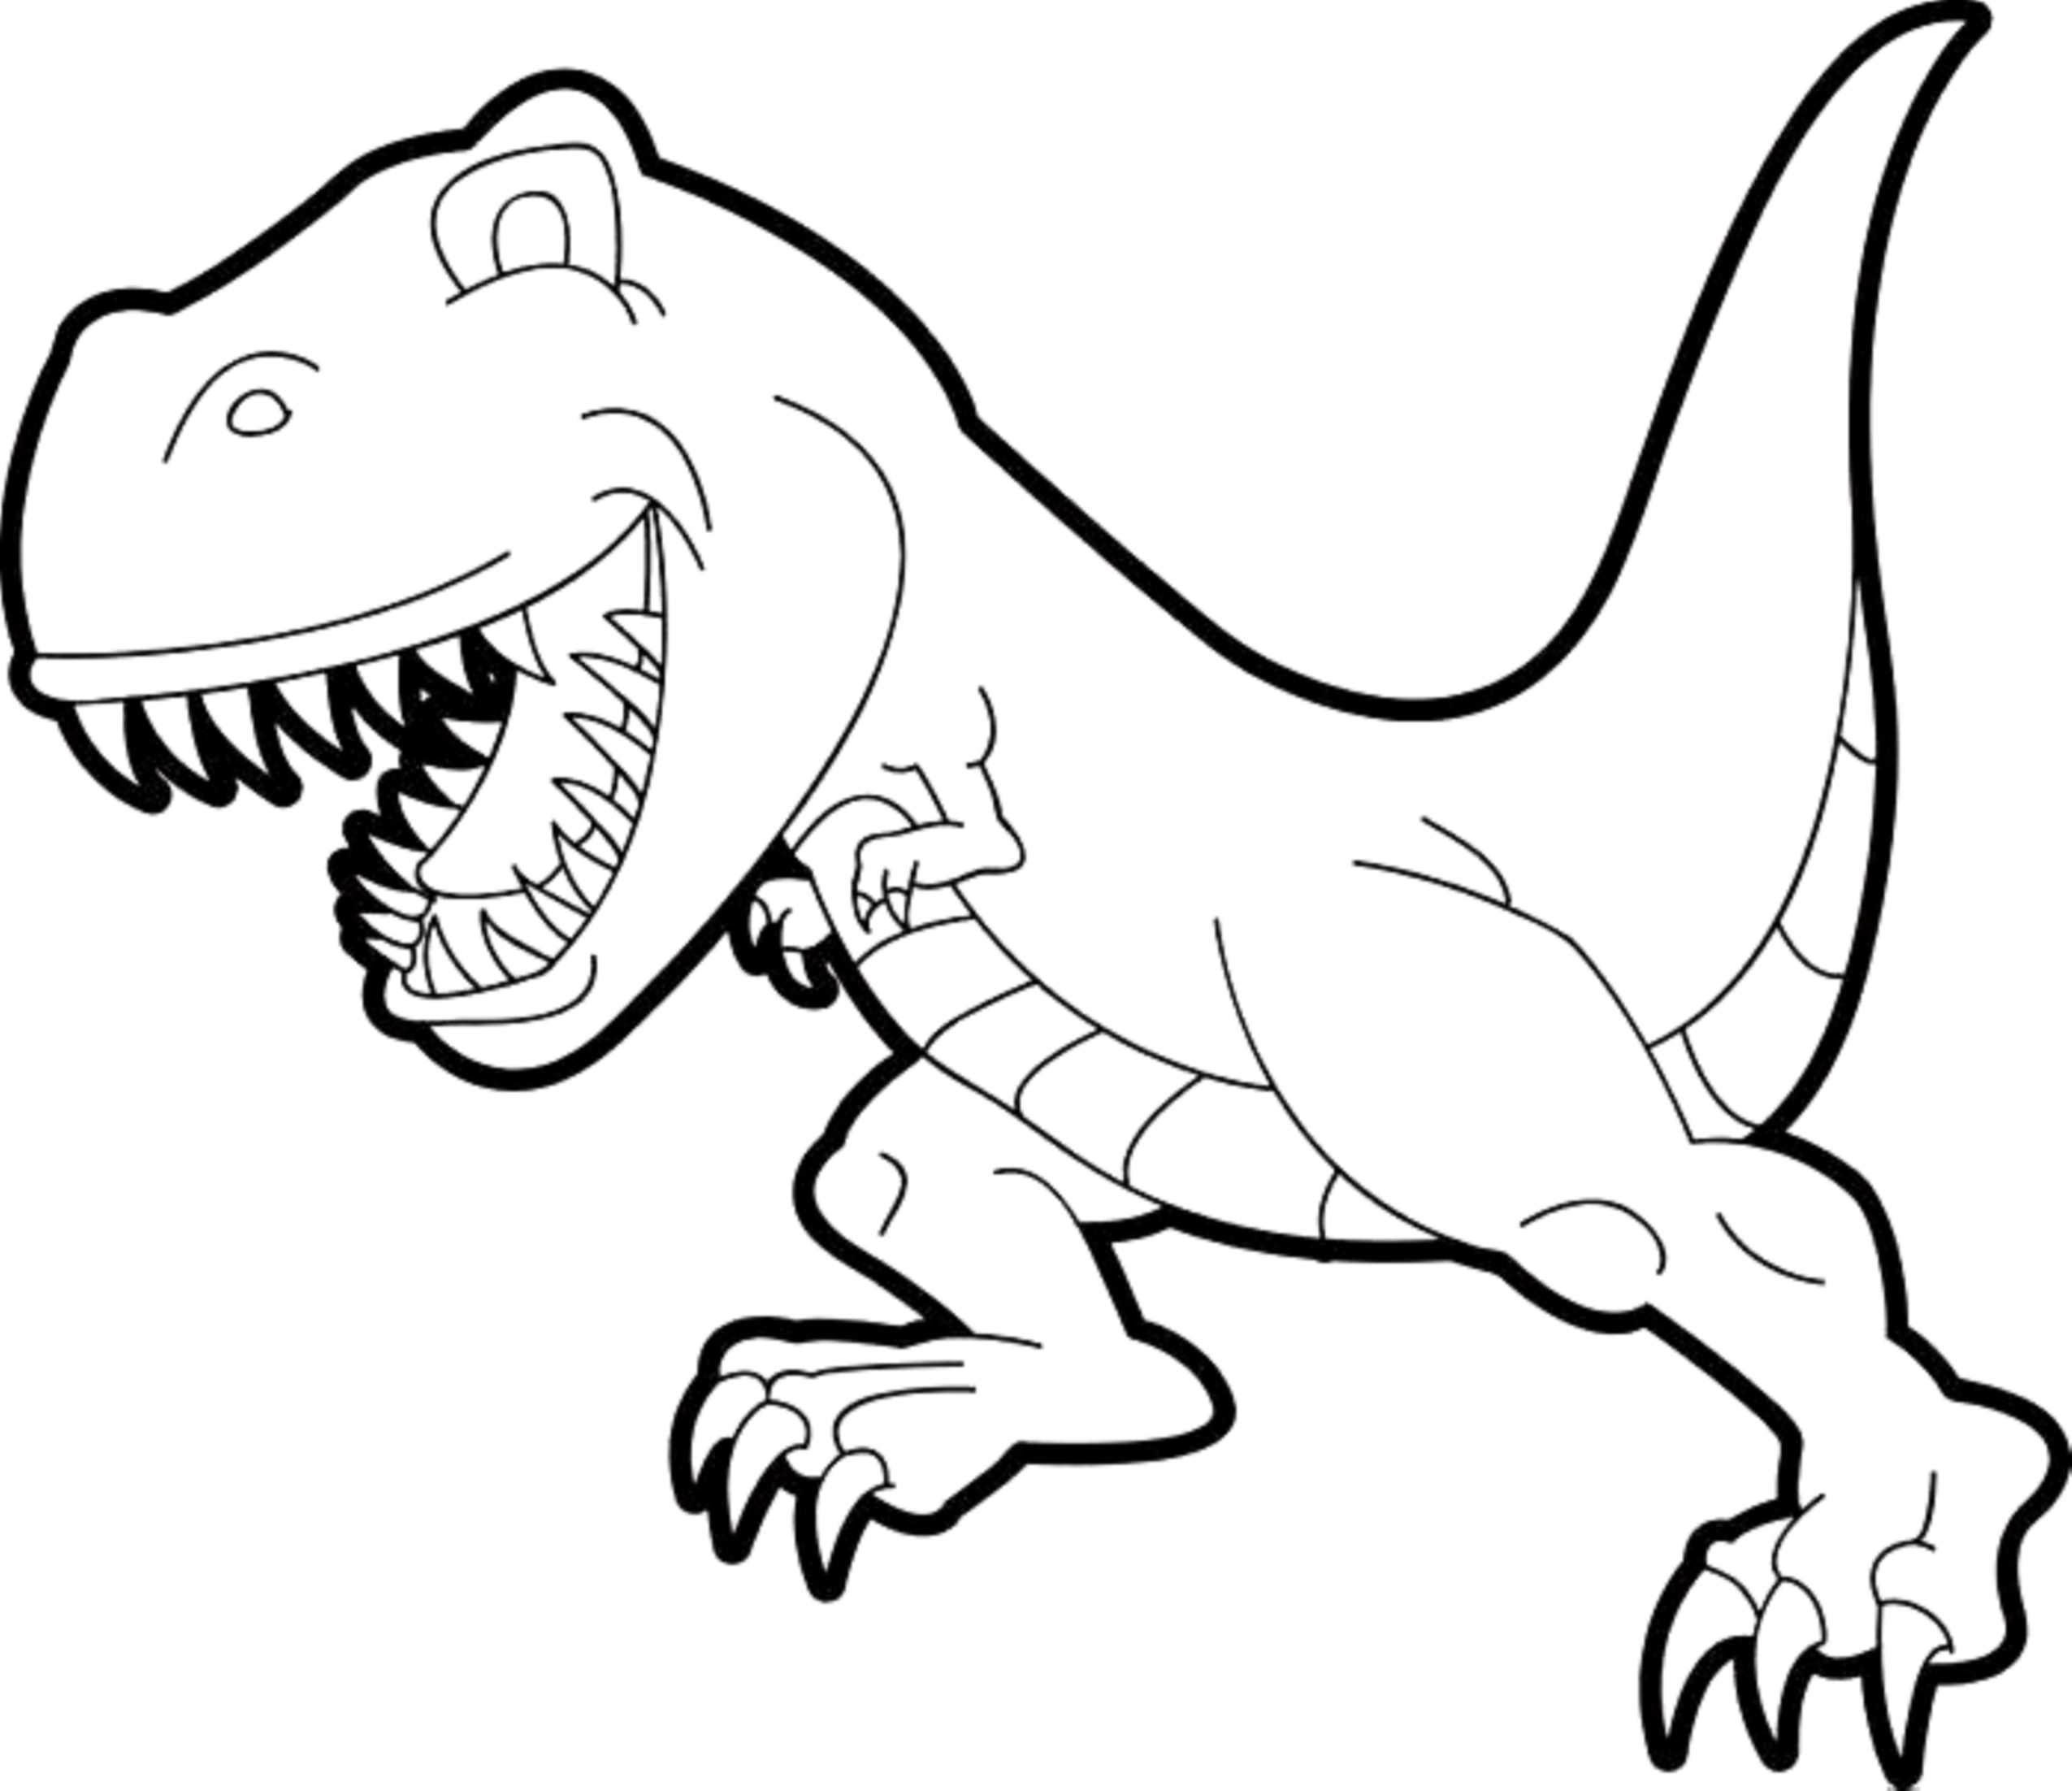 colouring dinosaur pictures dinosaur train coloring pages dinosaurs pictures and facts dinosaur colouring pictures